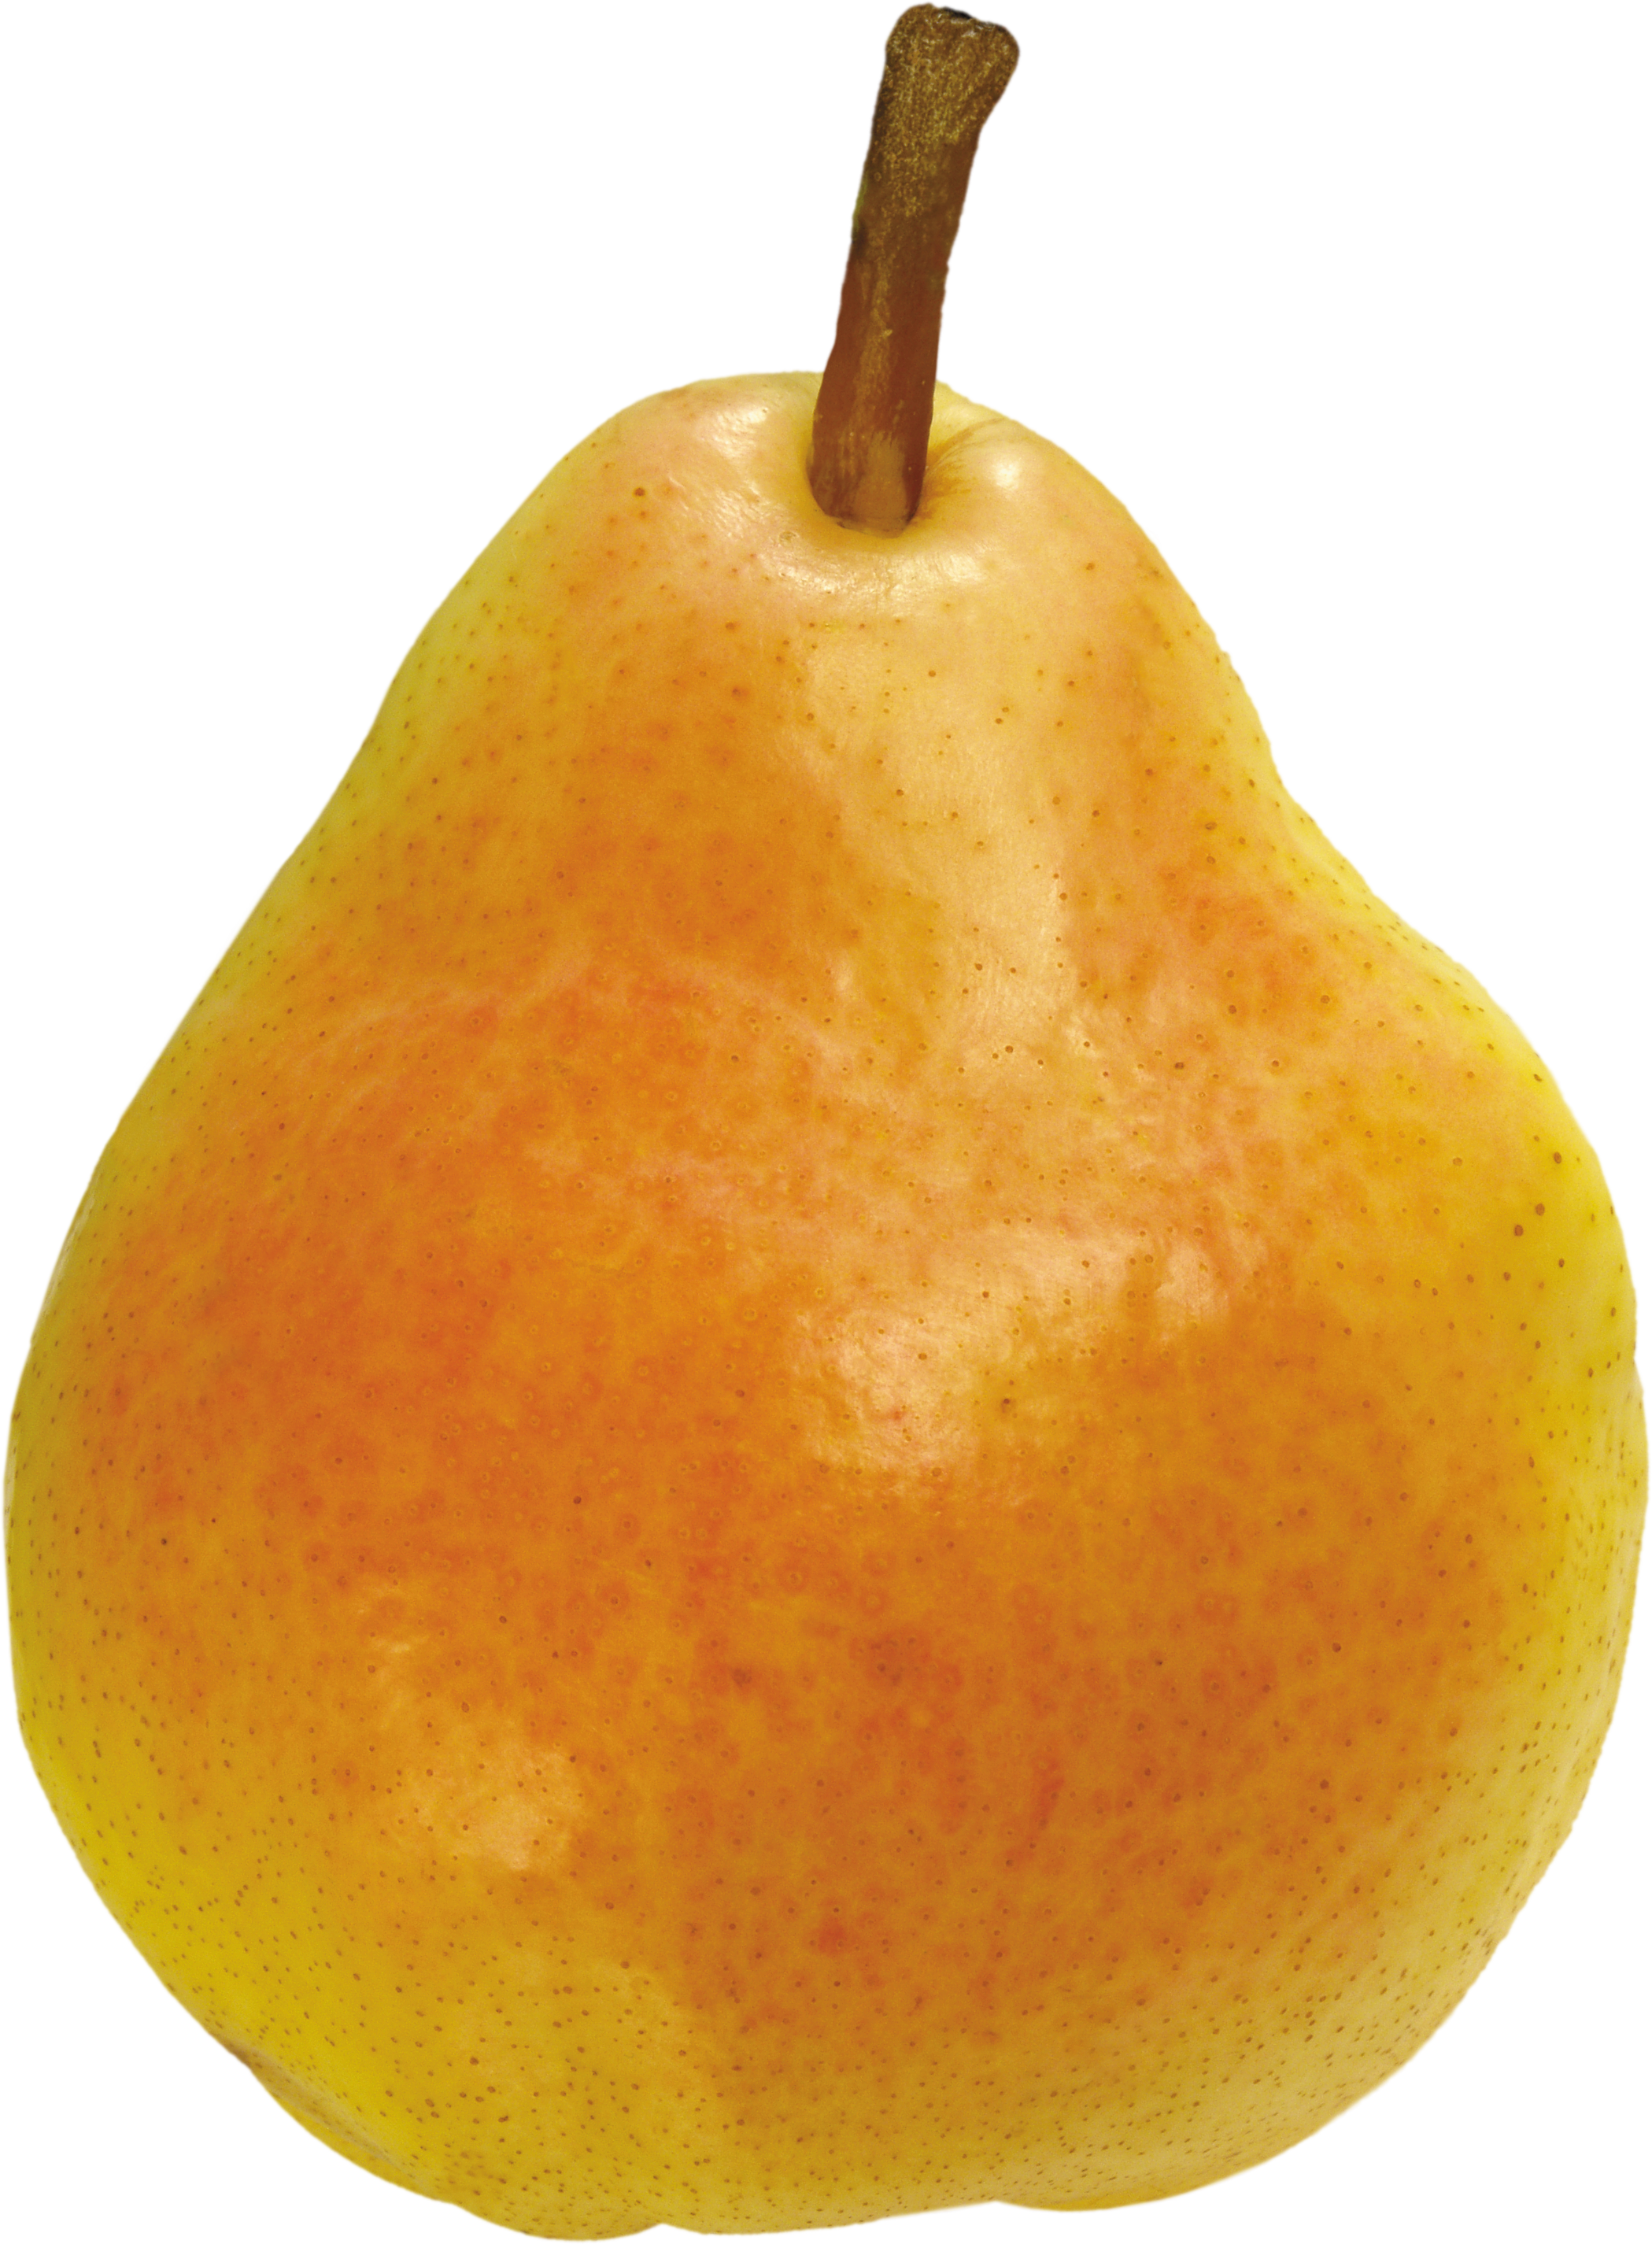 Pears png image purepng. Pear clipart transparent background